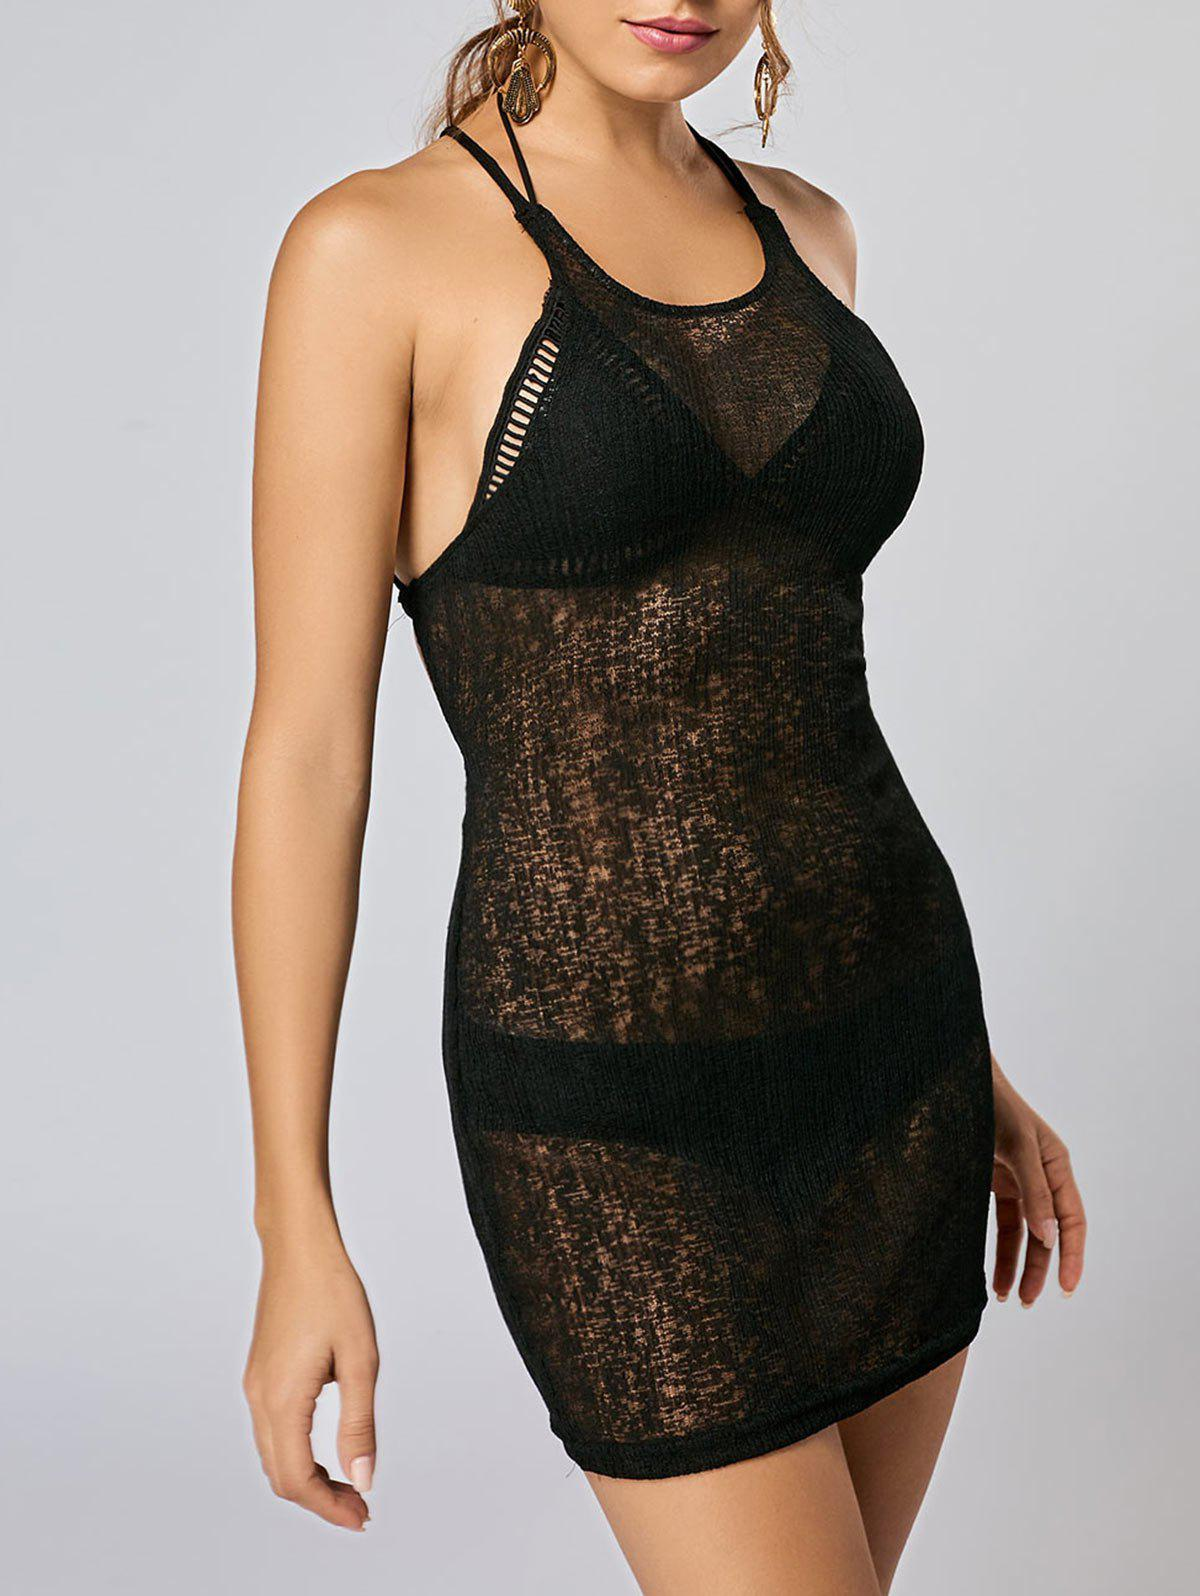 See Thru Backless Knitted Mini Dress - BLACK M